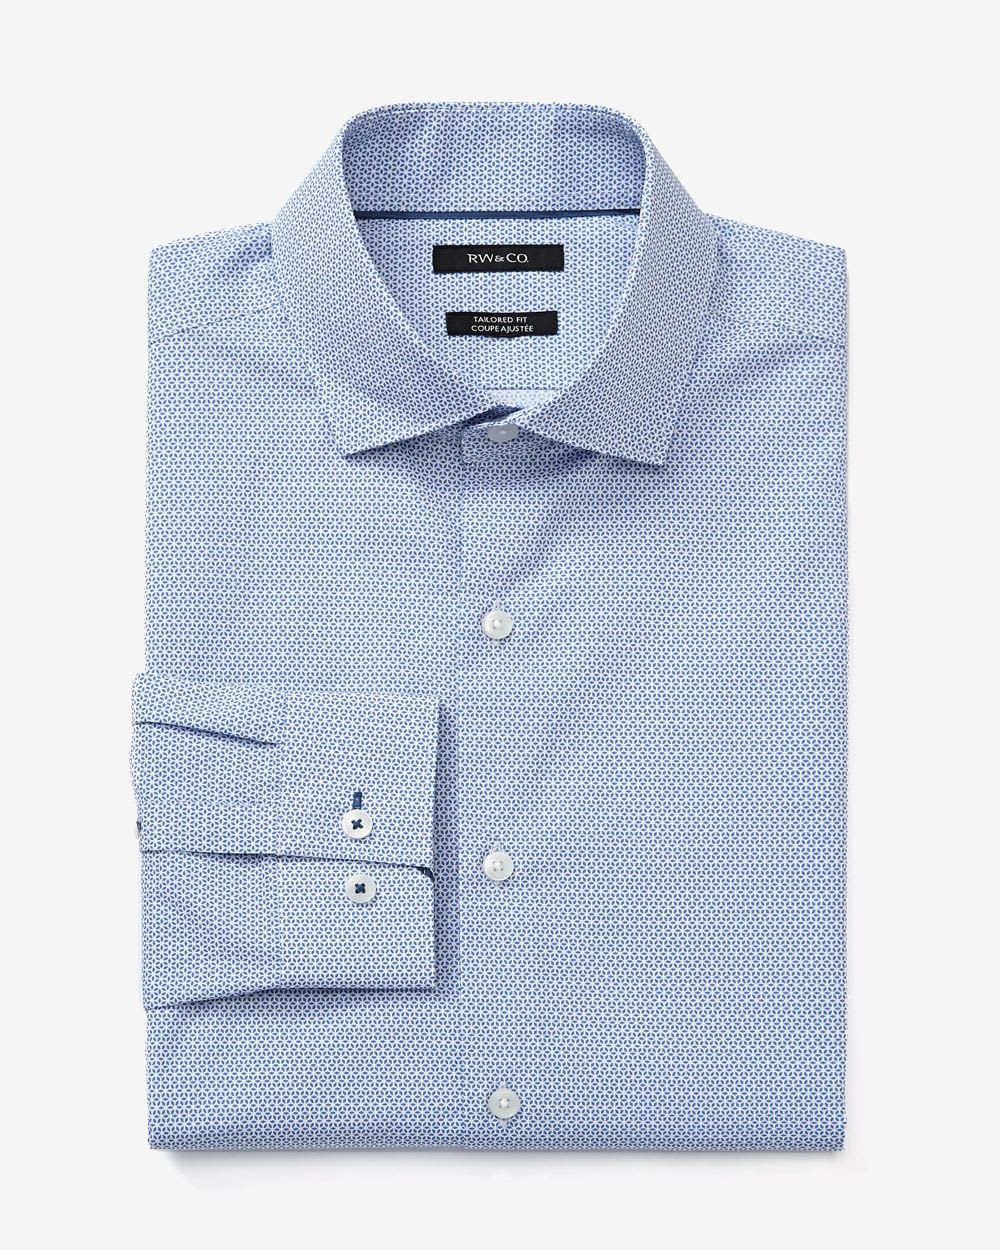 Tailored fit geo print dress shirt rw co for Tailoring a dress shirt